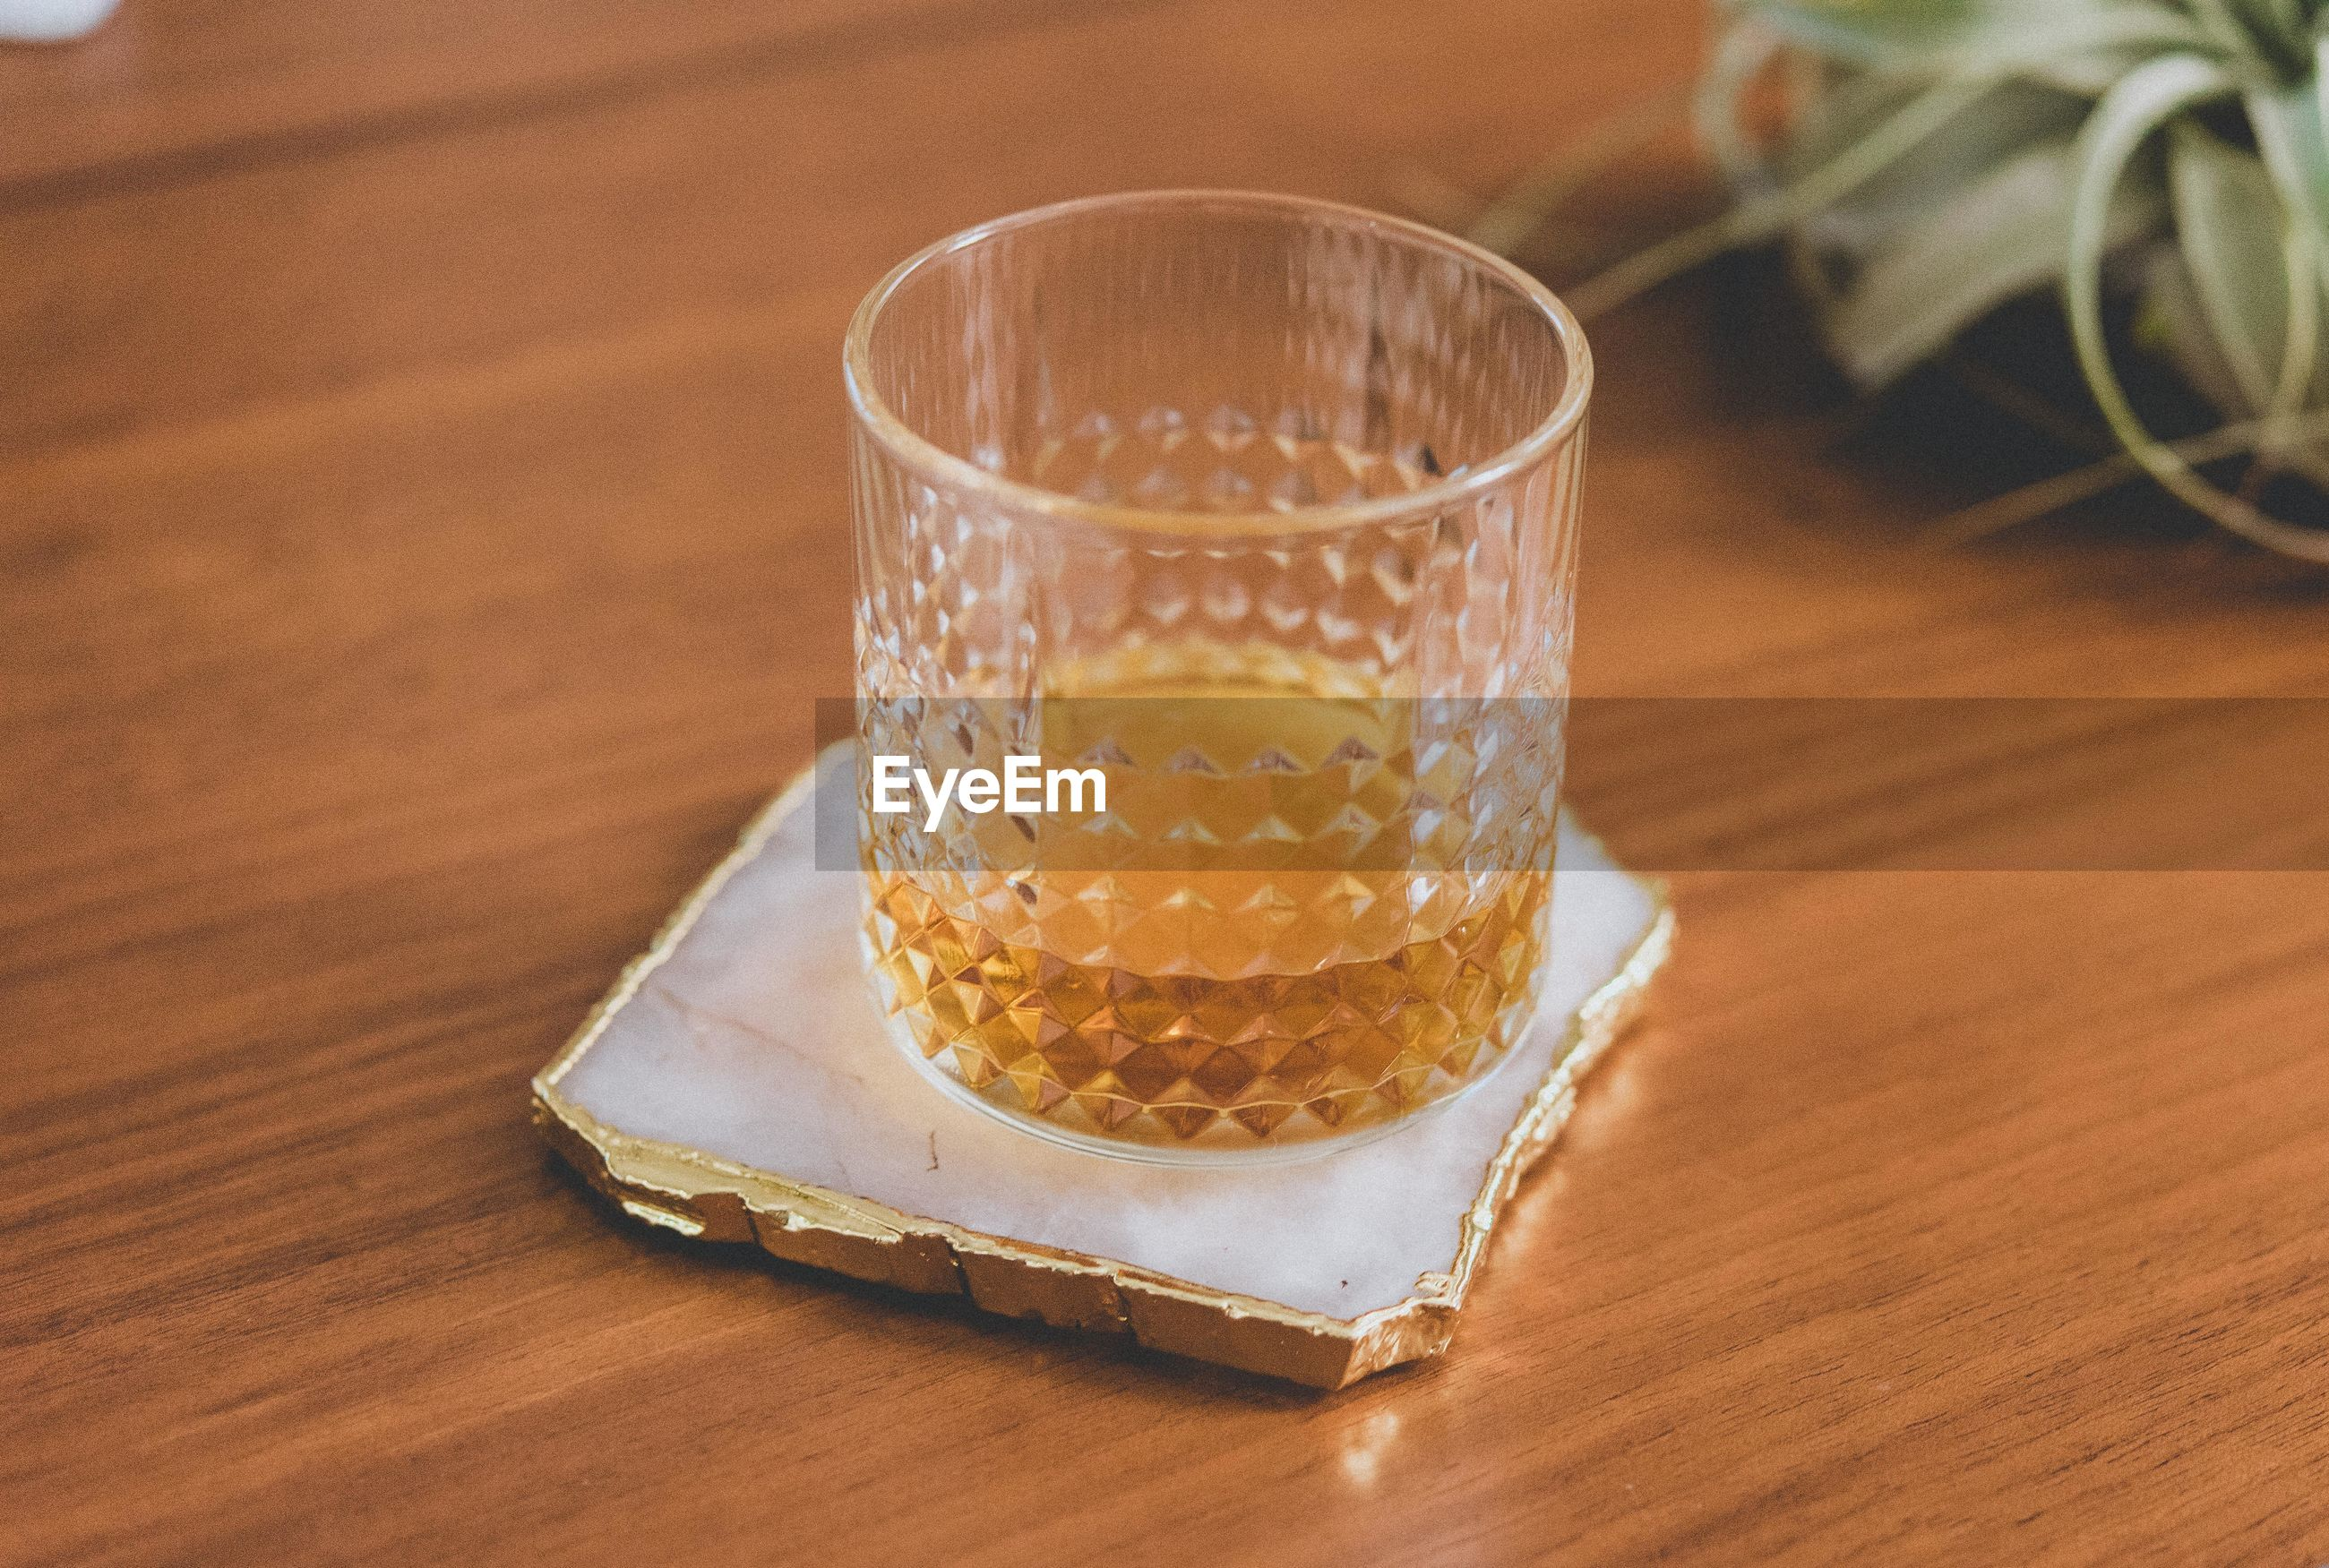 HIGH ANGLE VIEW OF DRINK IN GLASS